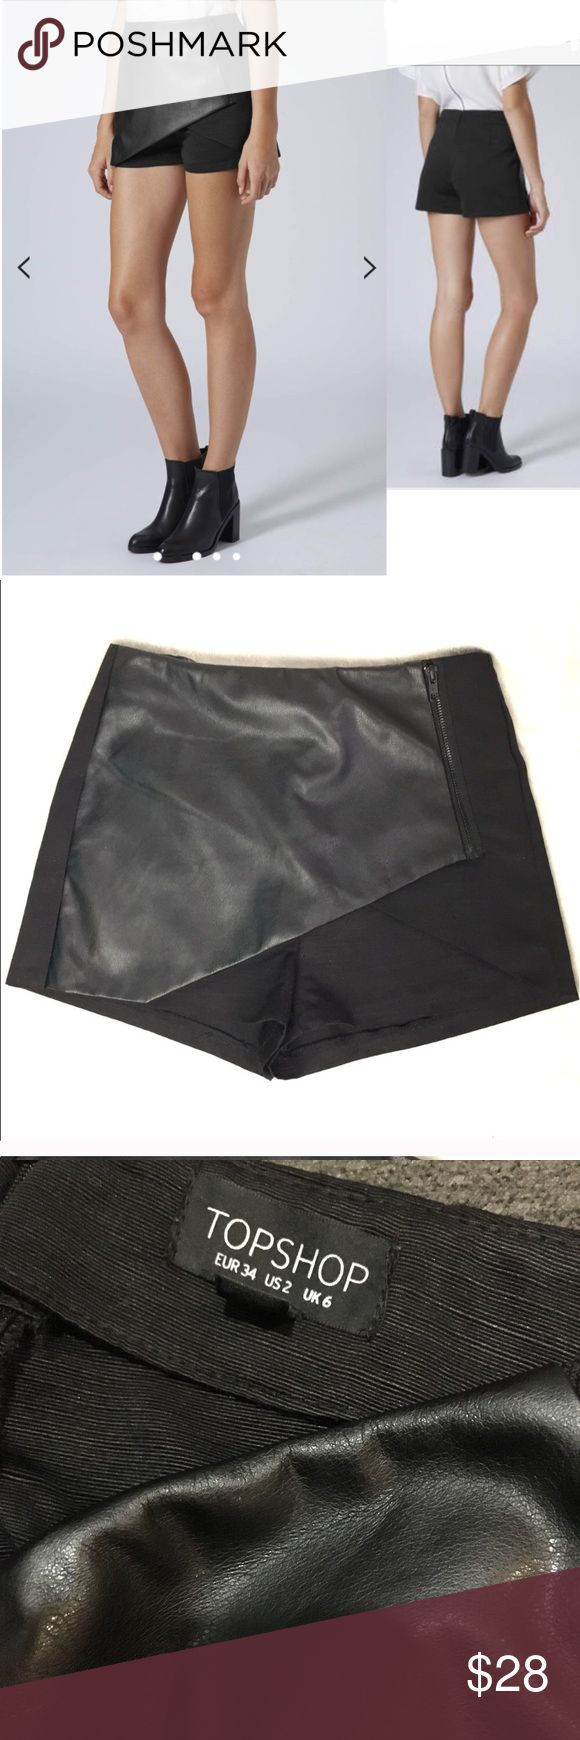 "Topshop PU Ottoman Zip Skort Faux leather asymmetrical skort from Topshop. No condition issues, worn once. Length down side is 12"". Waist is 13"" flat. From their website: PU and ottoman mix skort with wrap and zip detail. 100% Polyester. Machine washable. Topshop Shorts Skorts"